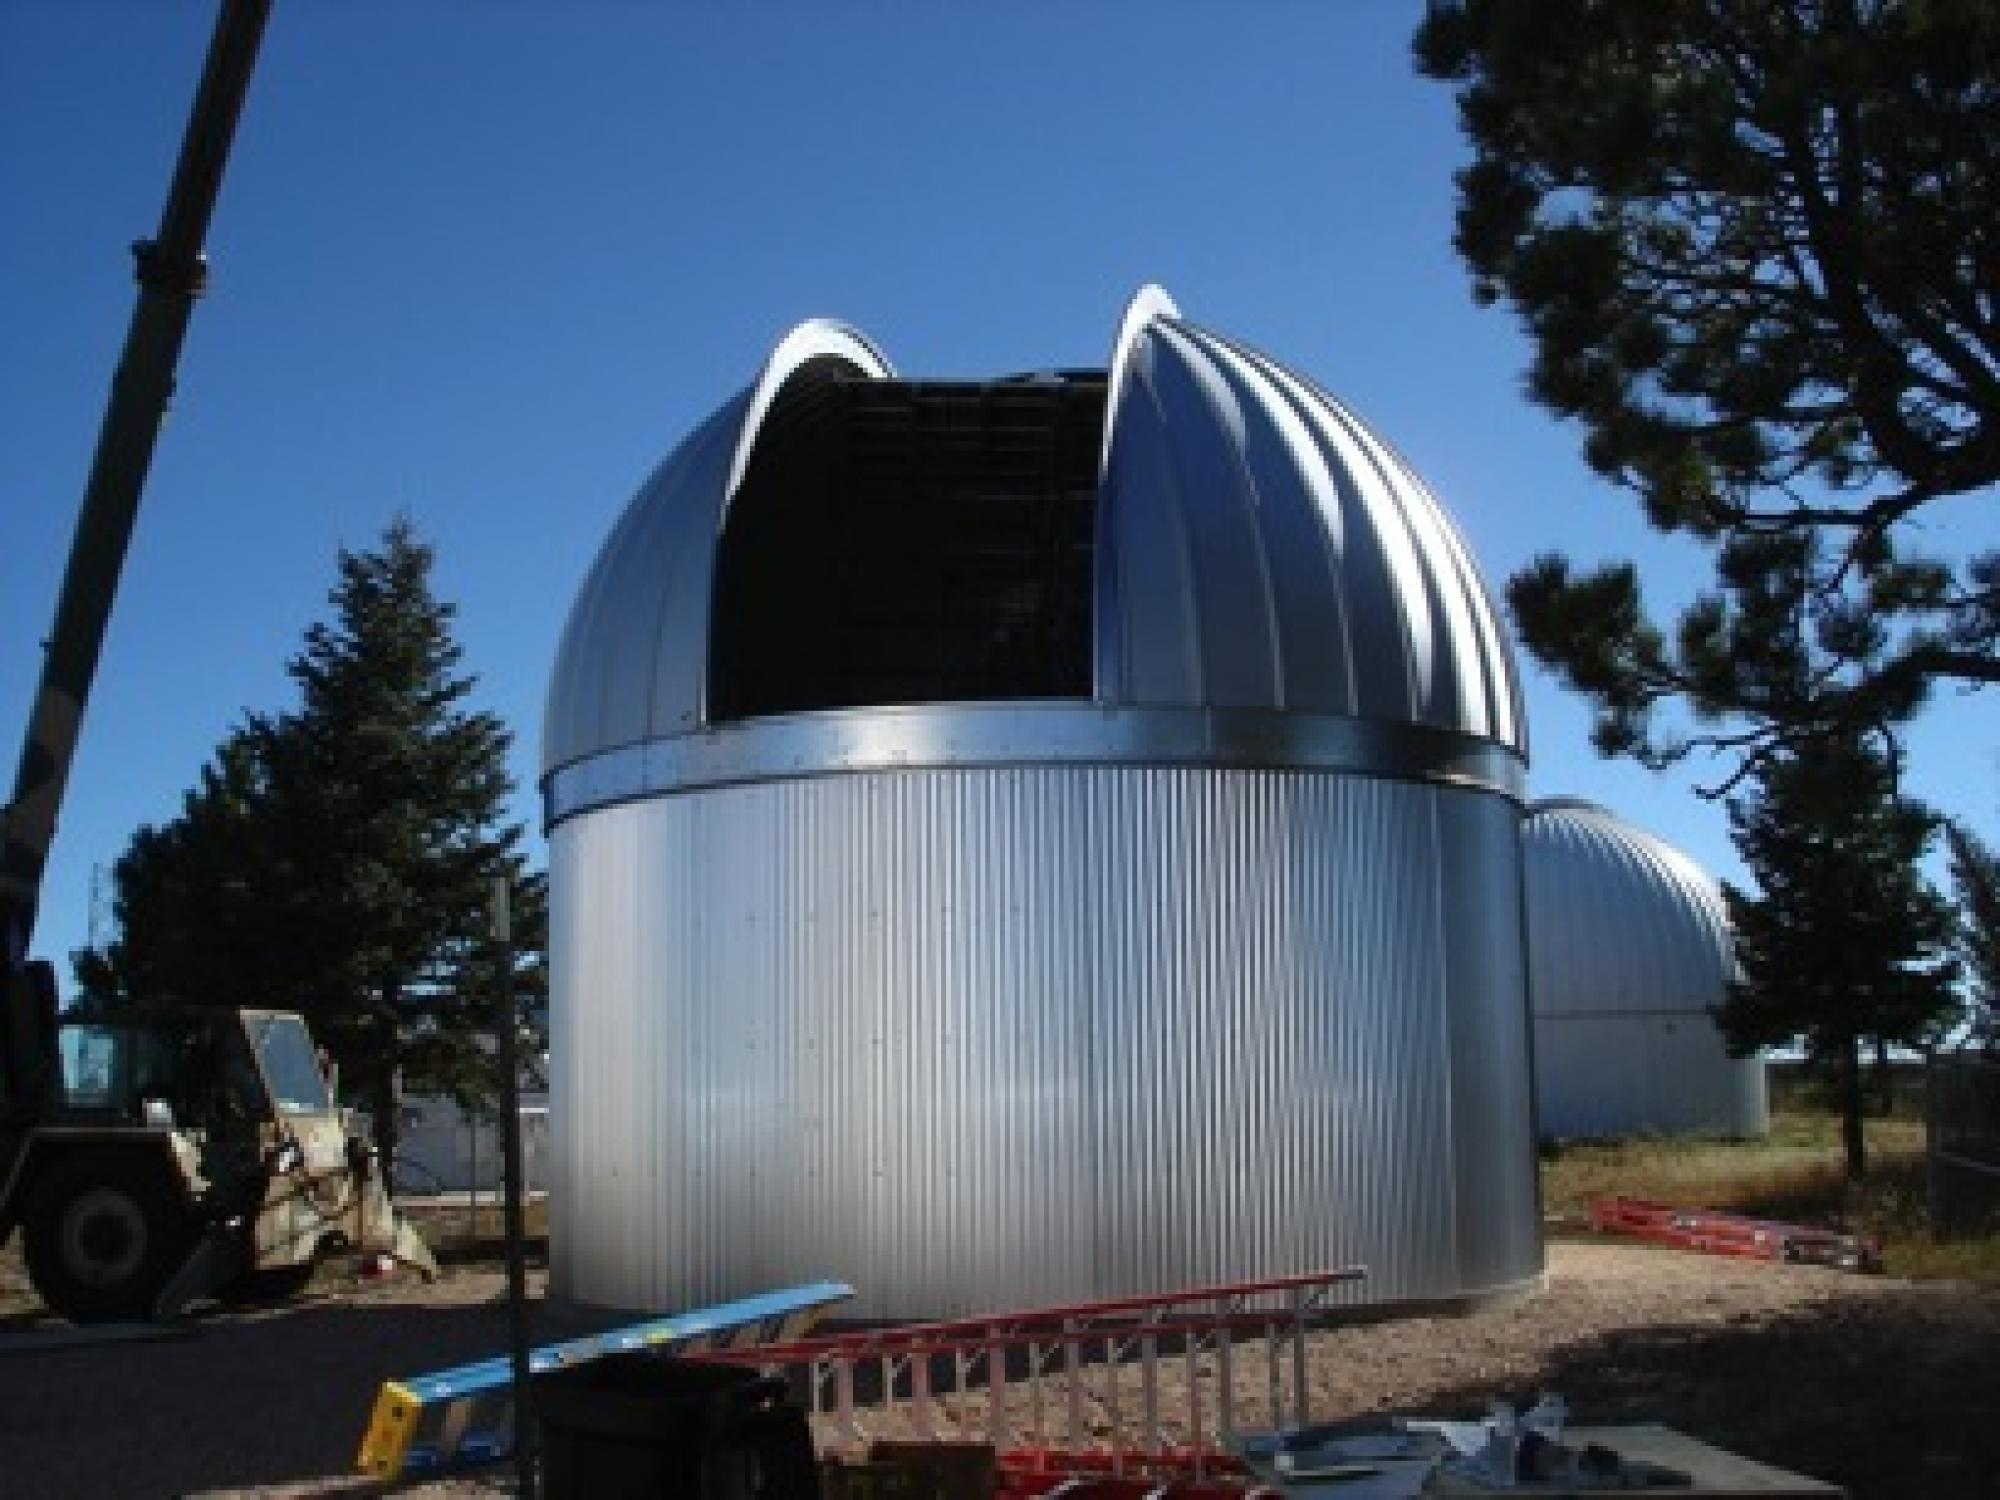 The Catalina Sky Survey is adding a new 1-meter, or 40-inch, telescope that will be used to follow-up NEO sitings. The telescope will be housed in this 22-foot dome built at Steward Observatory's Mount Lemmon site and should become operational this summer